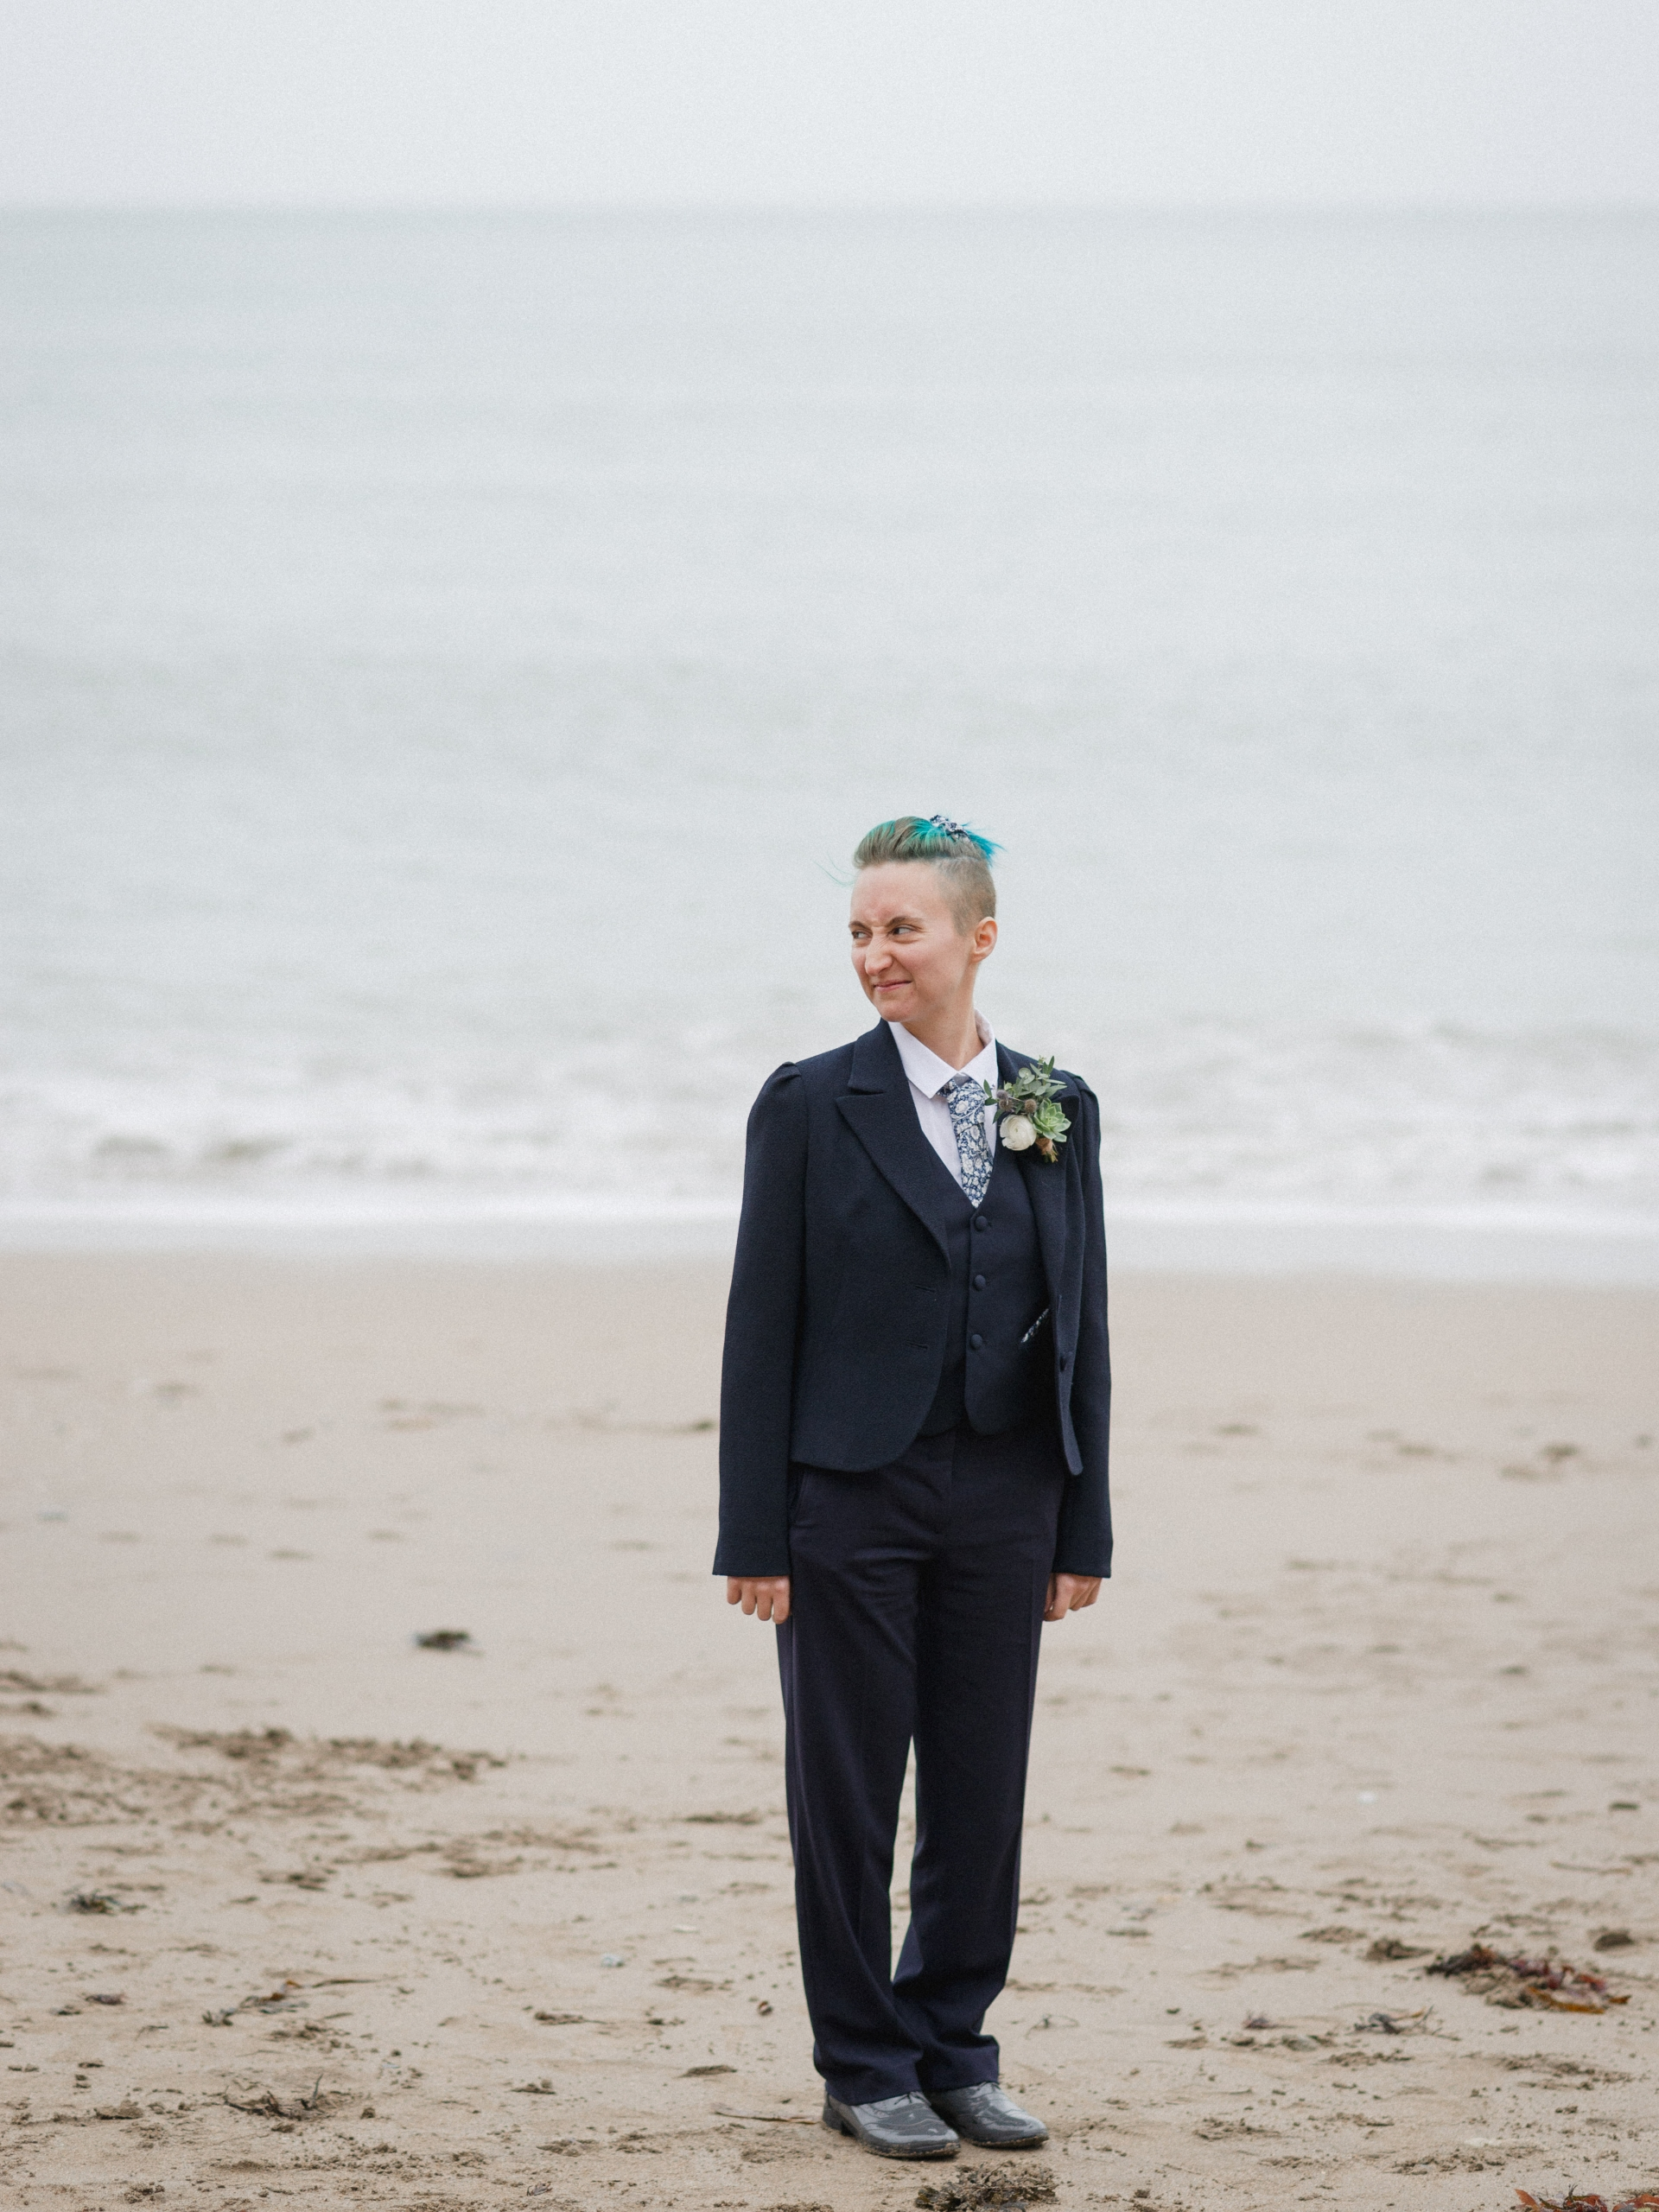 A person in a navy suit stands on sand in front of the sea, looking over to the left